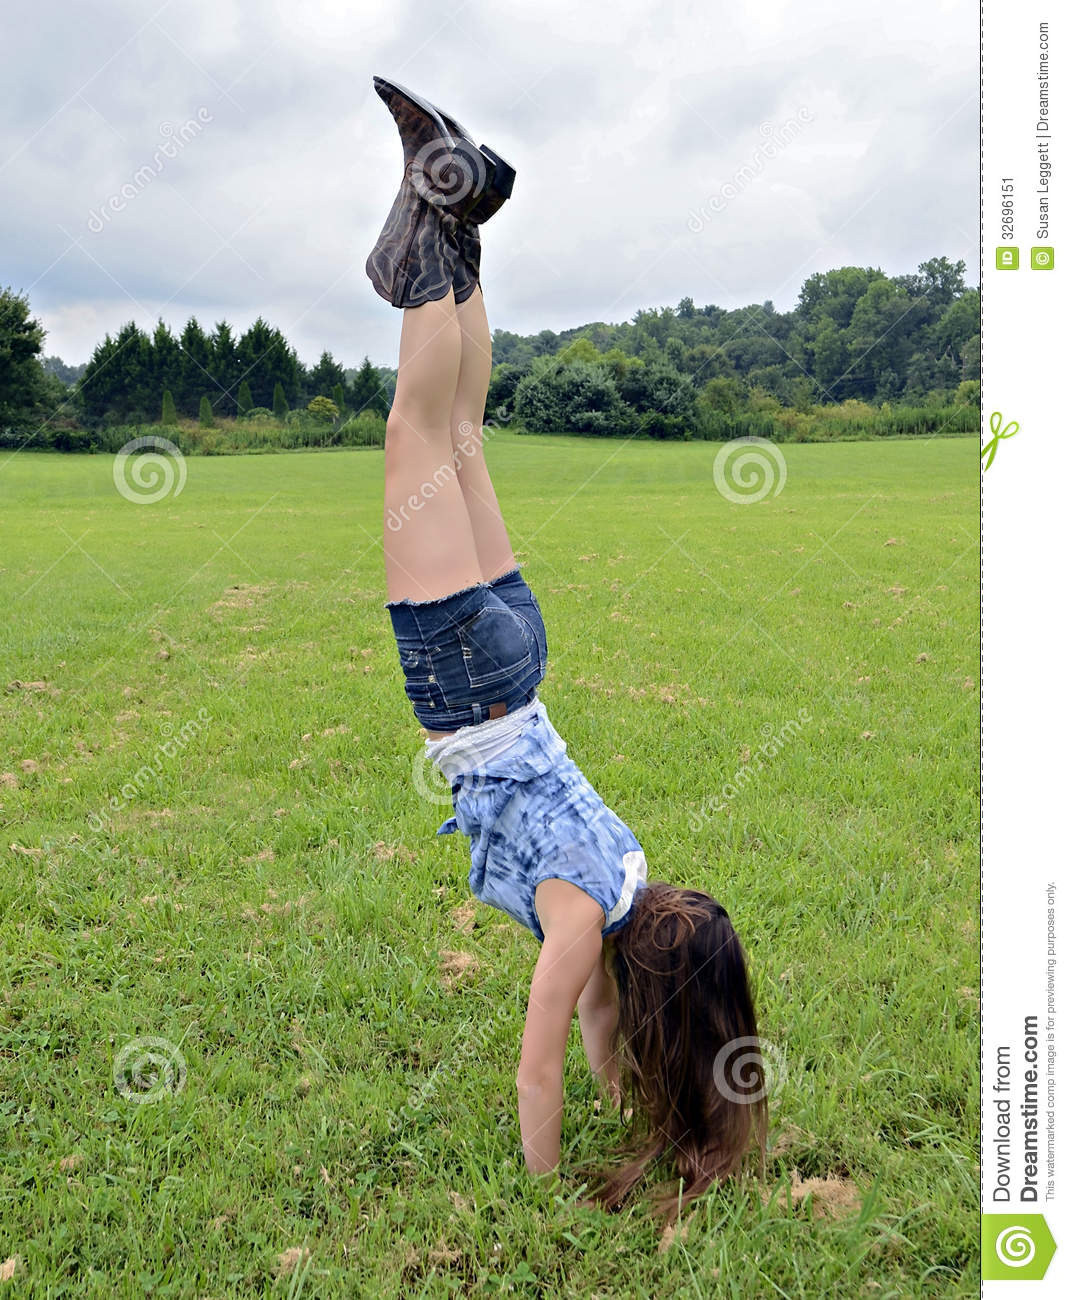 Girl Handstand Outdoors Stock Image - Image: 32696151